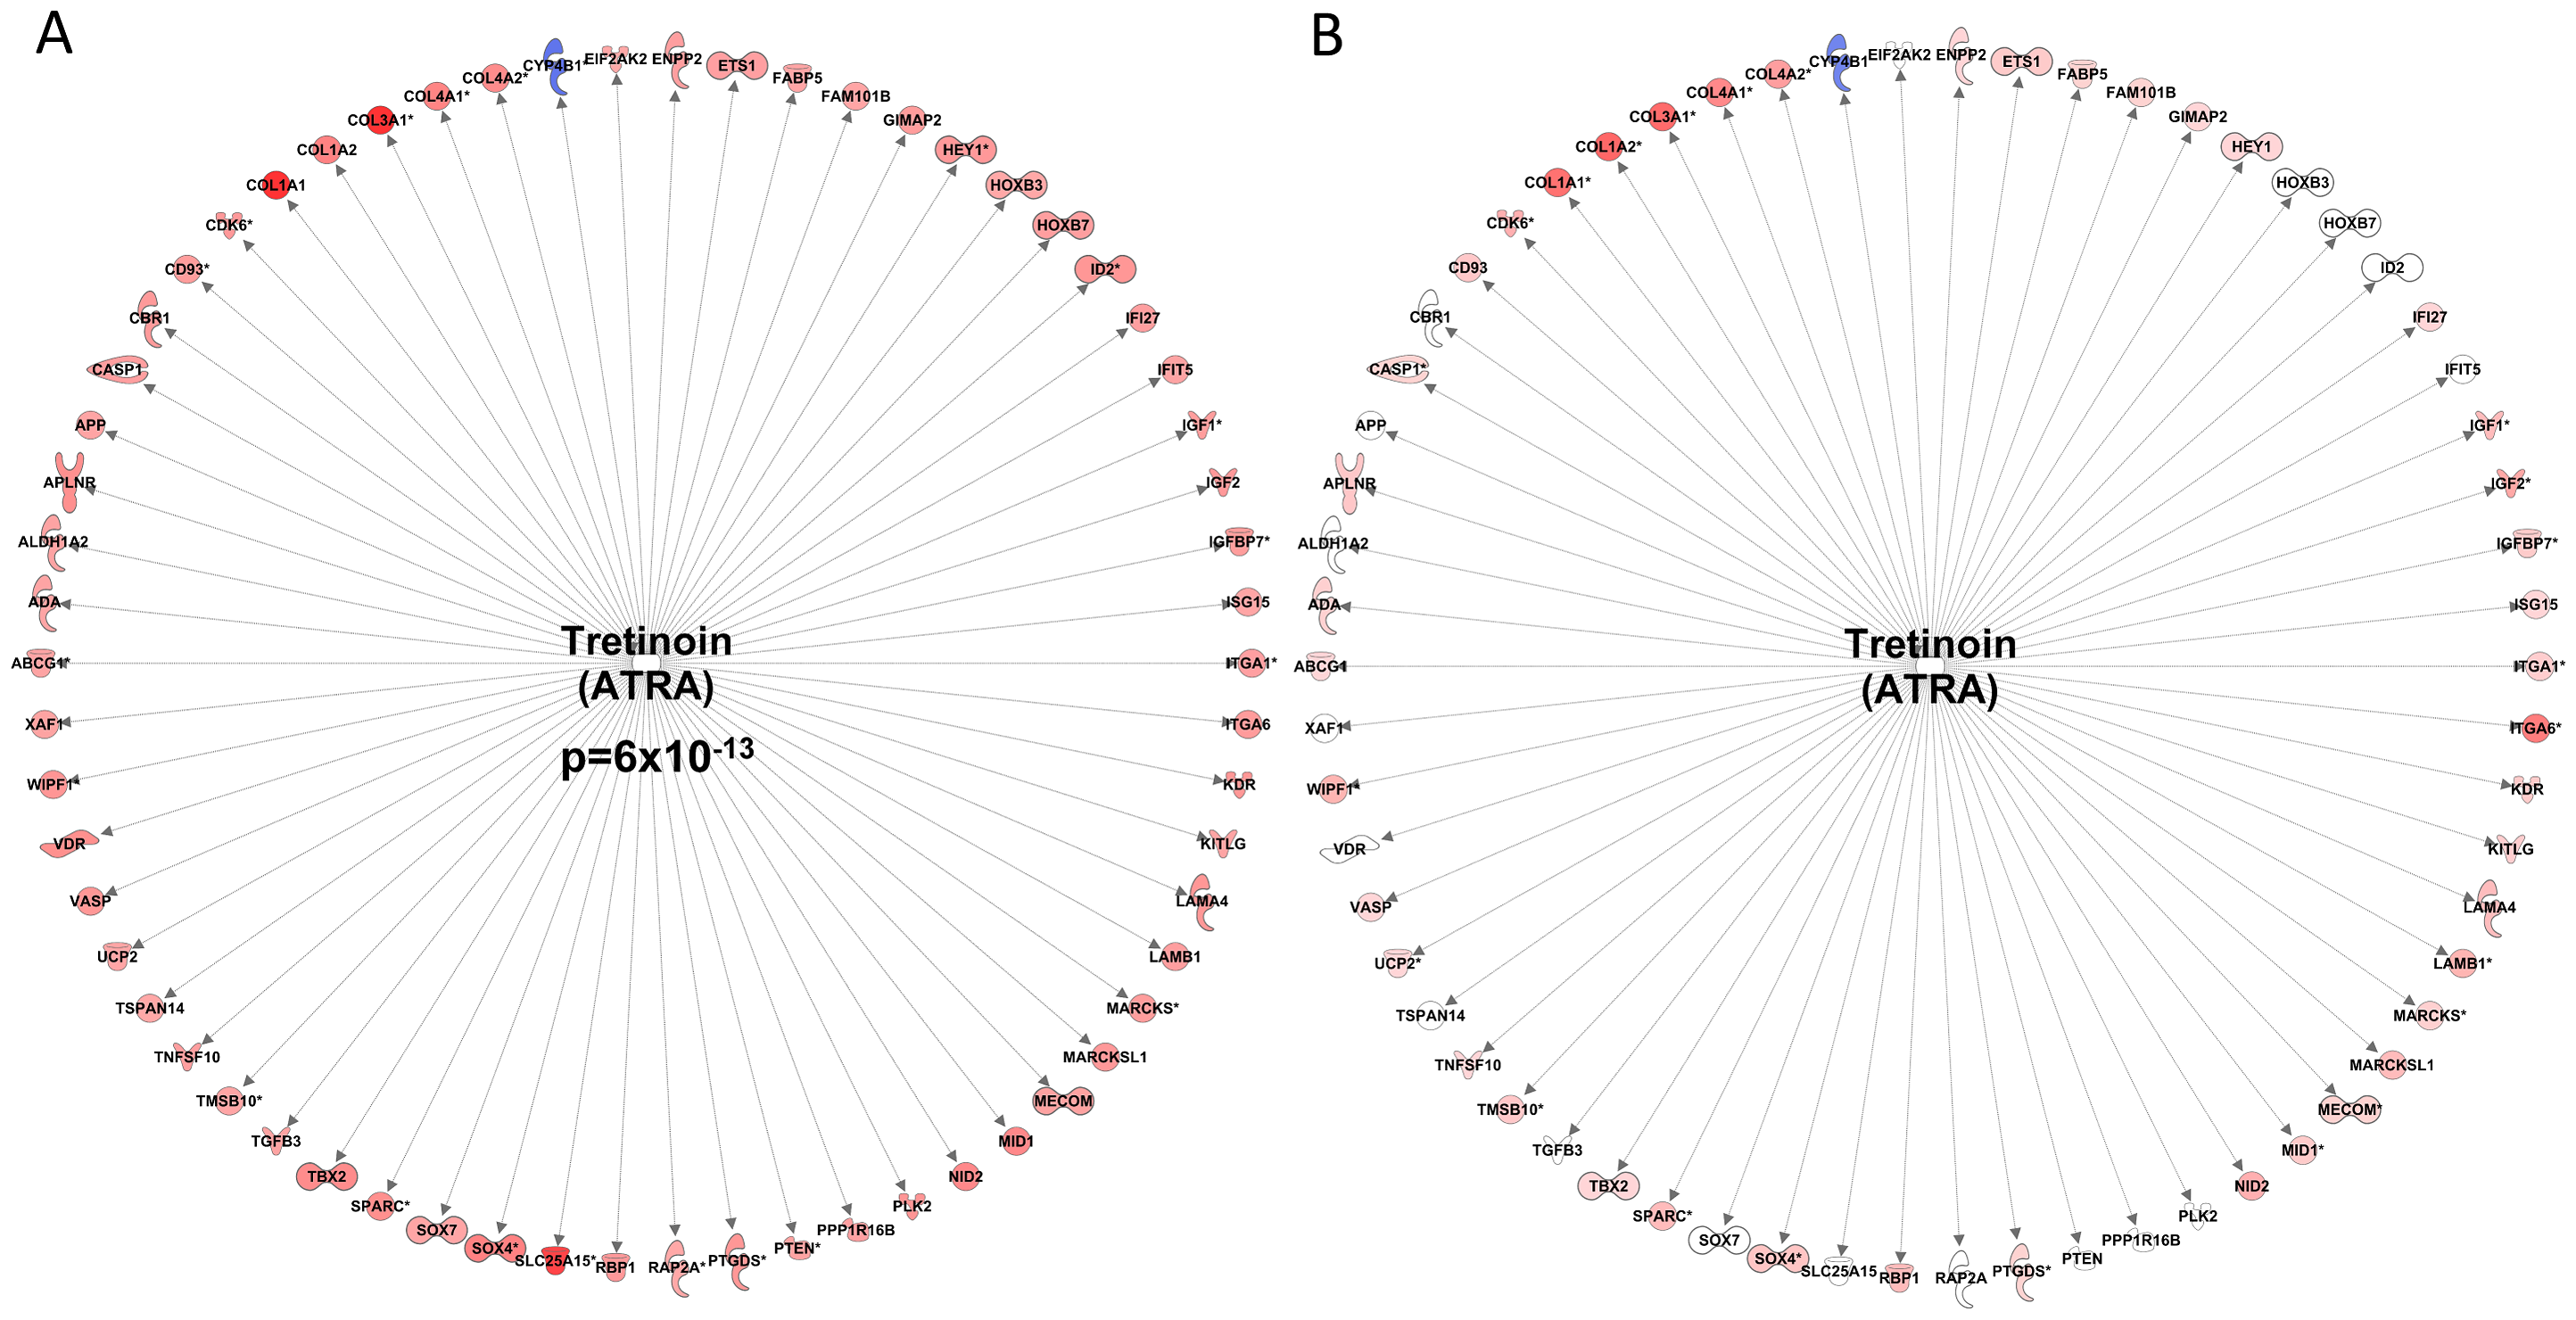 Resistance exercise training induces an all-trans retinoic acid differential gene expression signature that is common with endurance exercise training.